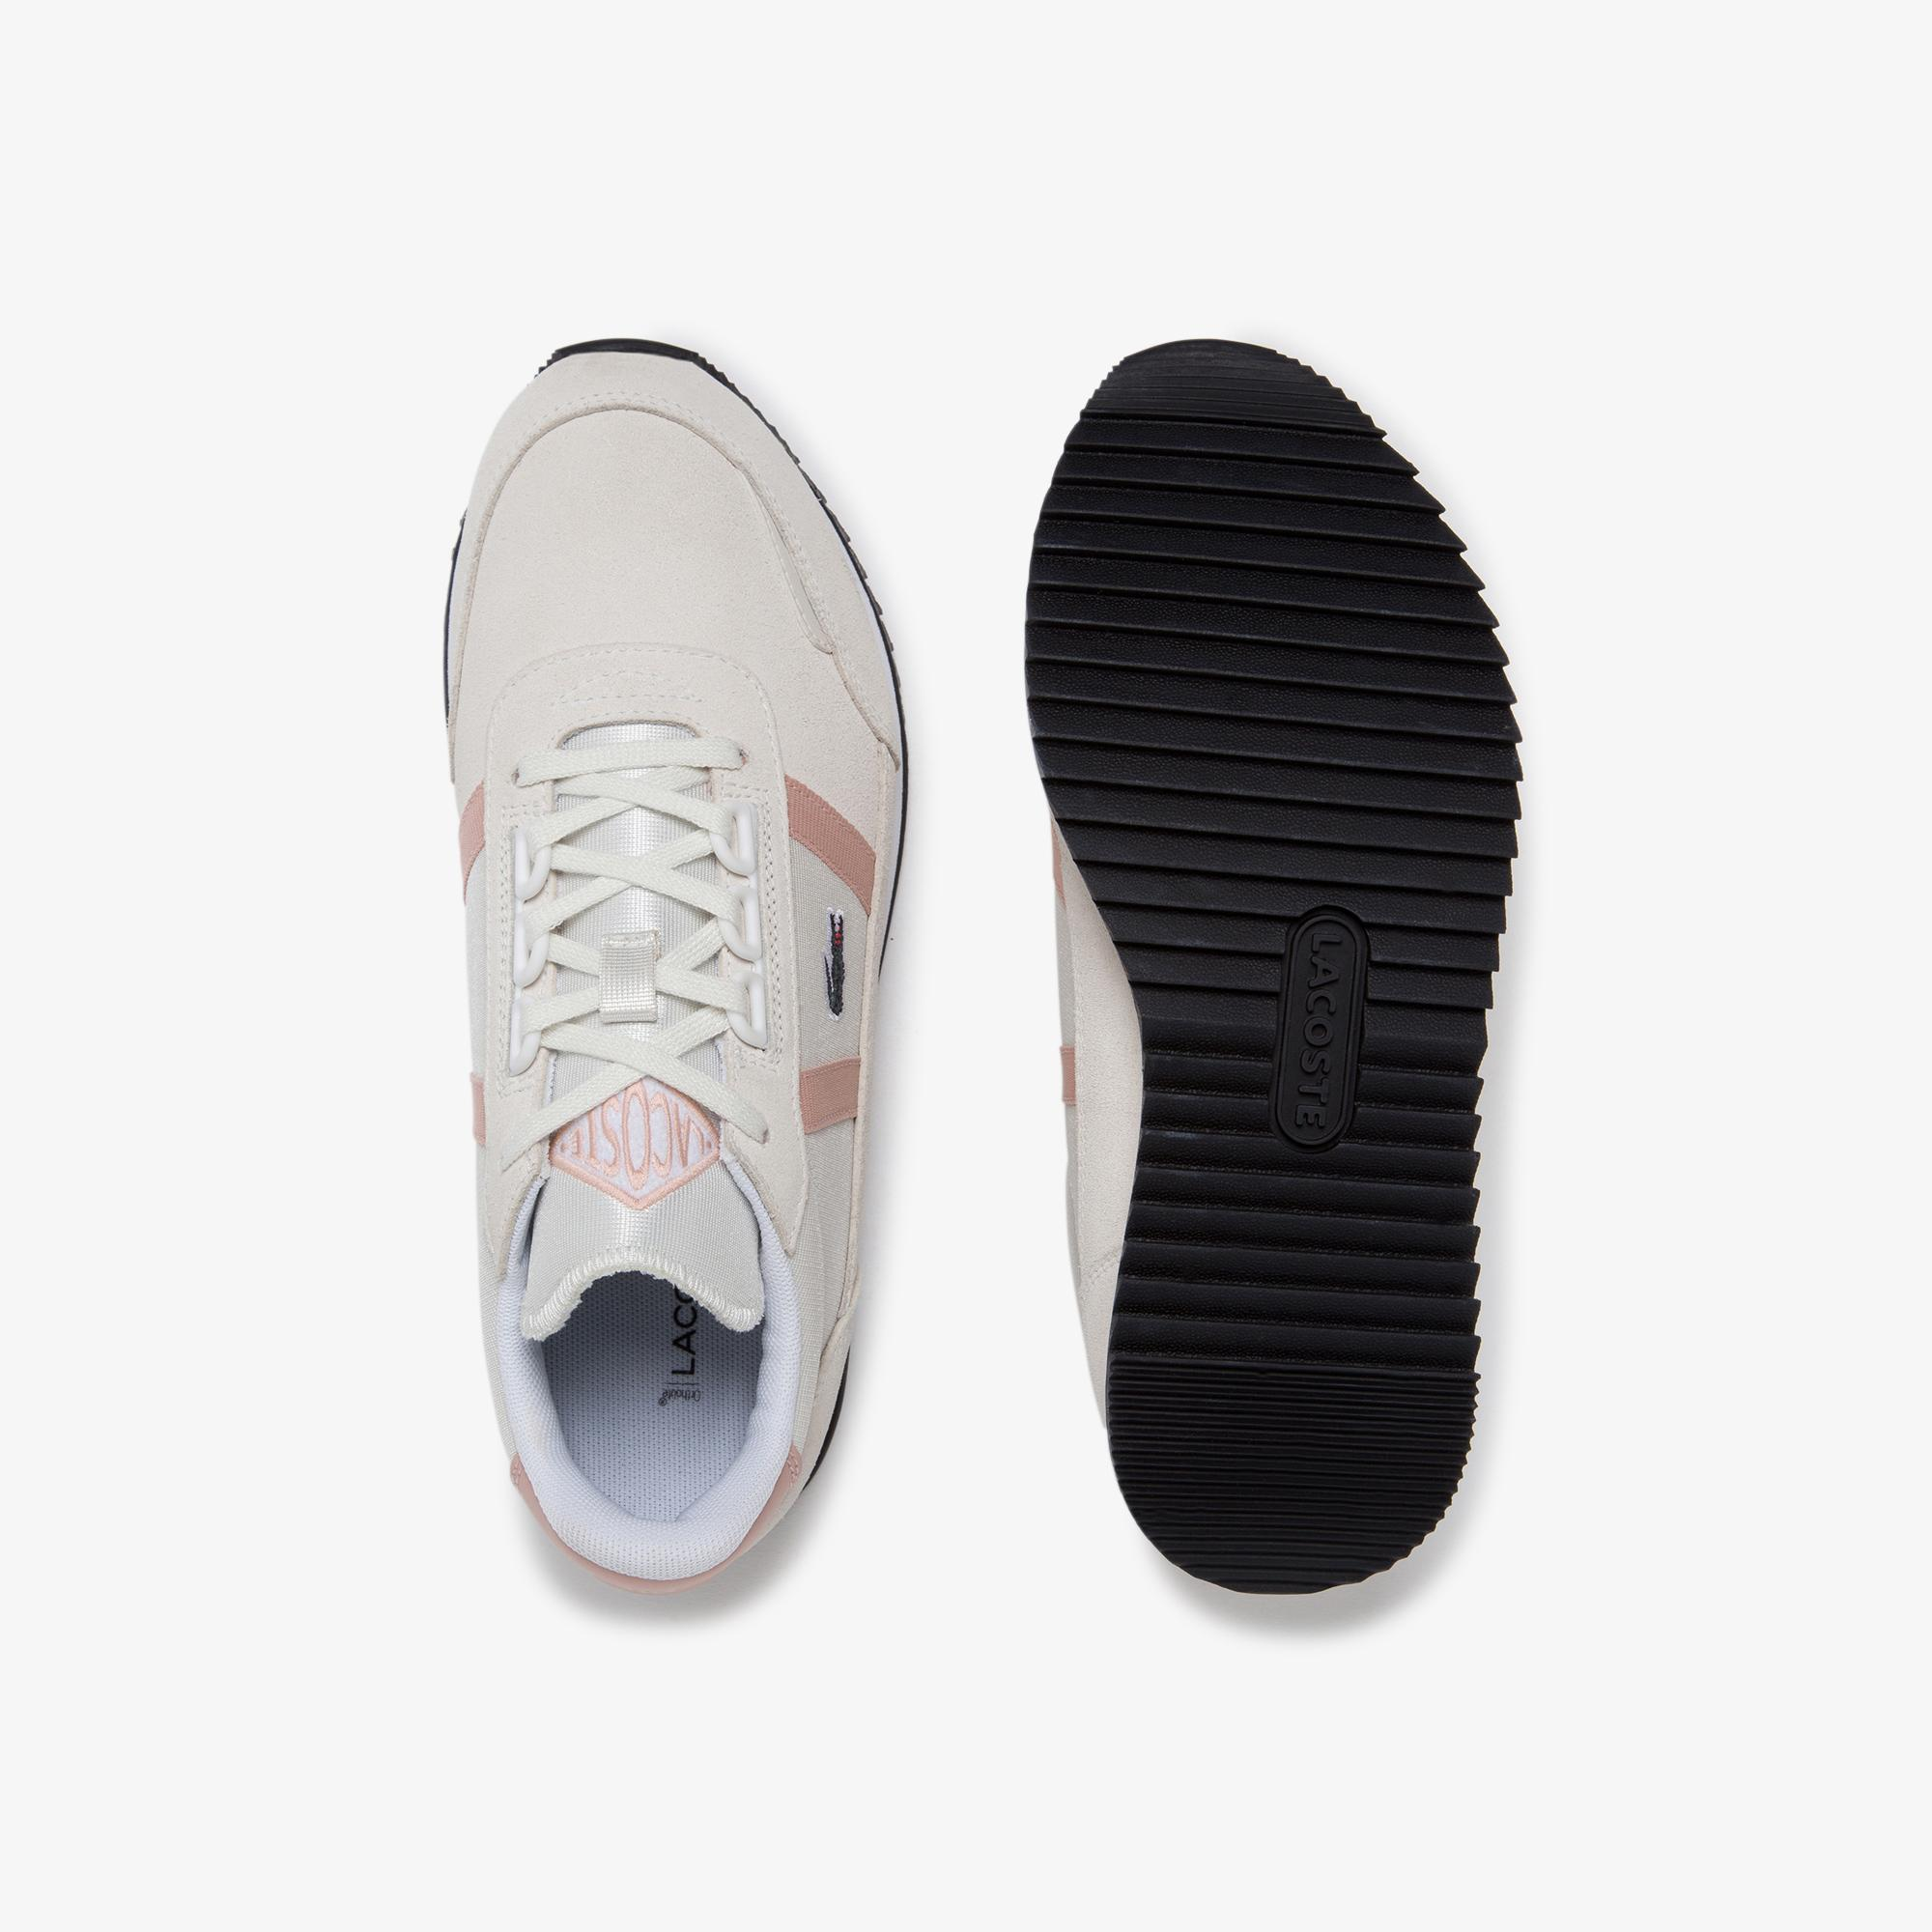 Lacoste Partner Retro 120 1 Women's Sneakers